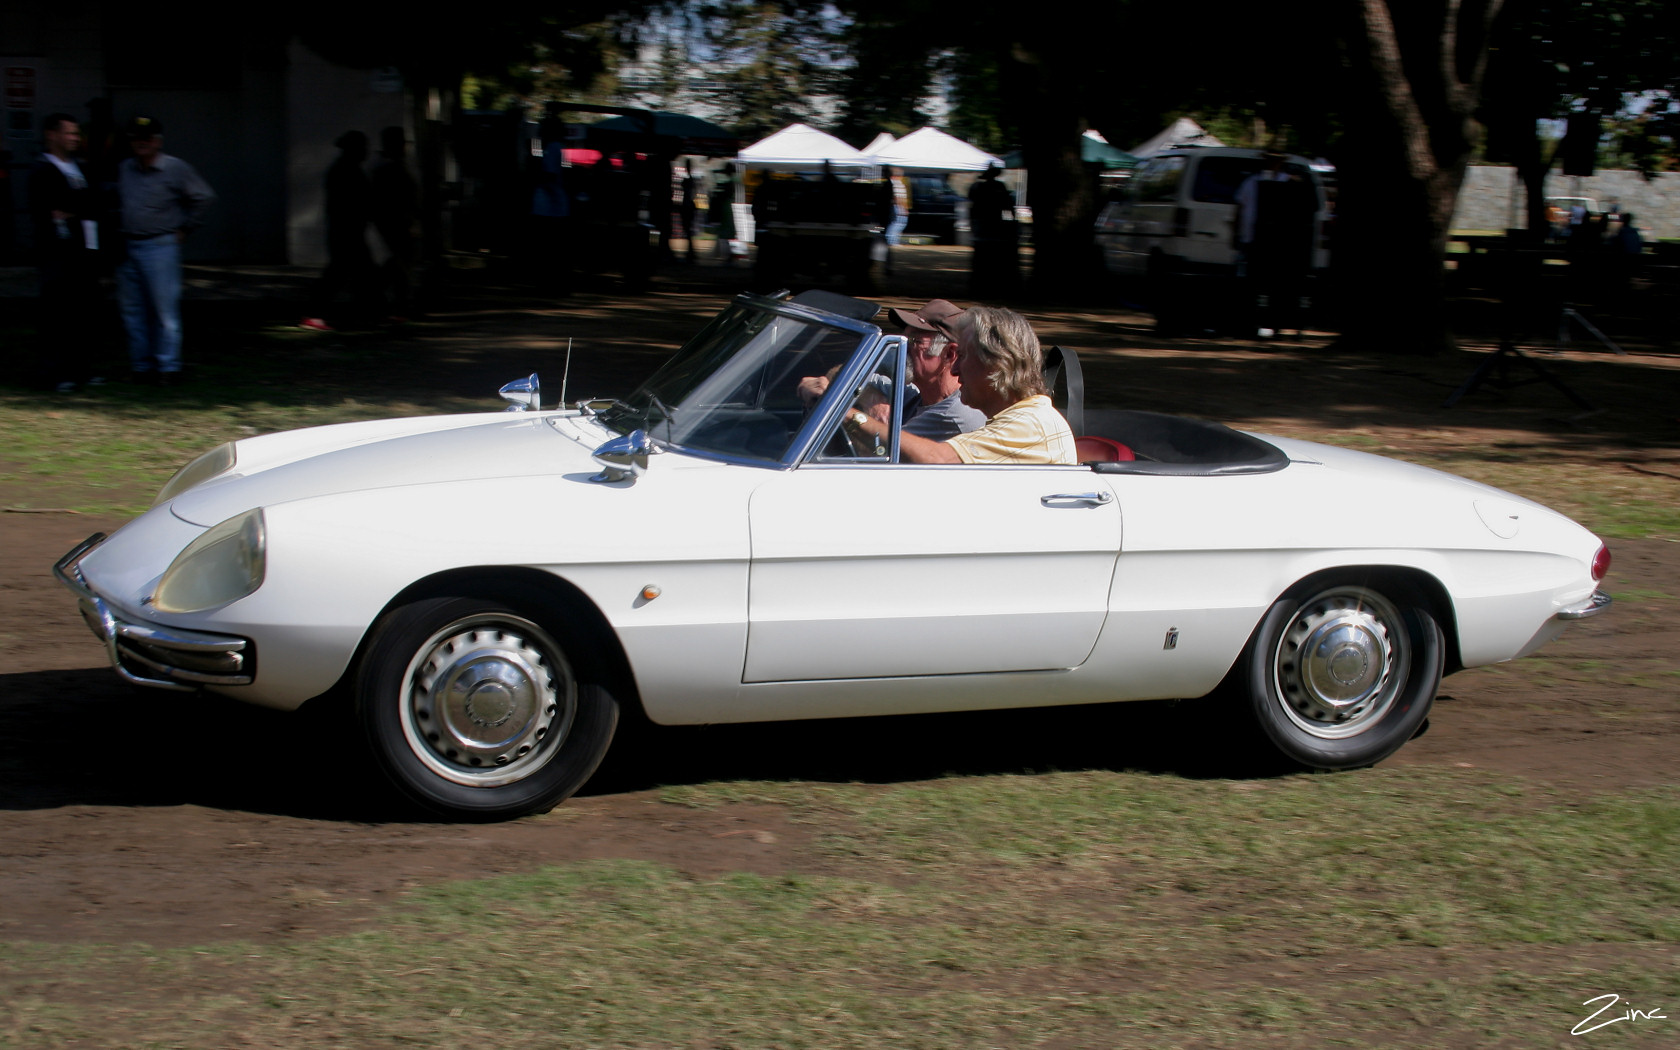 File:1972 Alfa Romeo Spider - white - svl (4637760990).jpg - Wikimedia Commons